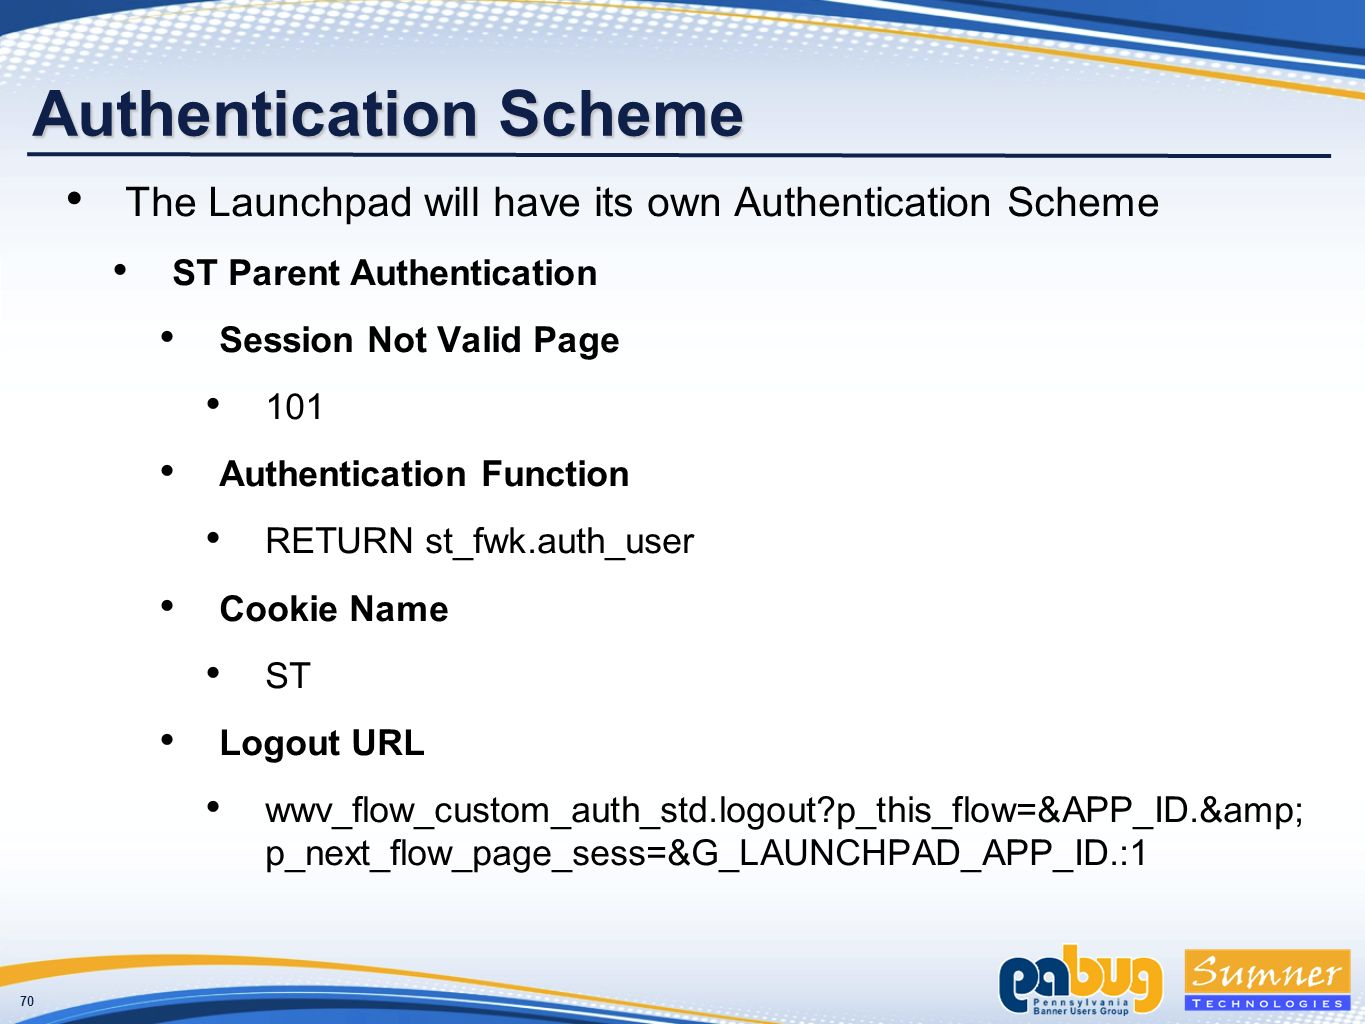 70 Authentication Scheme The Launchpad will have its own Authentication Scheme ST Parent Authentication Session Not Valid Page 101 Authentication Function RETURN st_fwk.auth_user Cookie Name ST Logout URL wwv_flow_custom_auth_std.logout p_this_flow=&APP_ID.& p_next_flow_page_sess=&G_LAUNCHPAD_APP_ID.:1